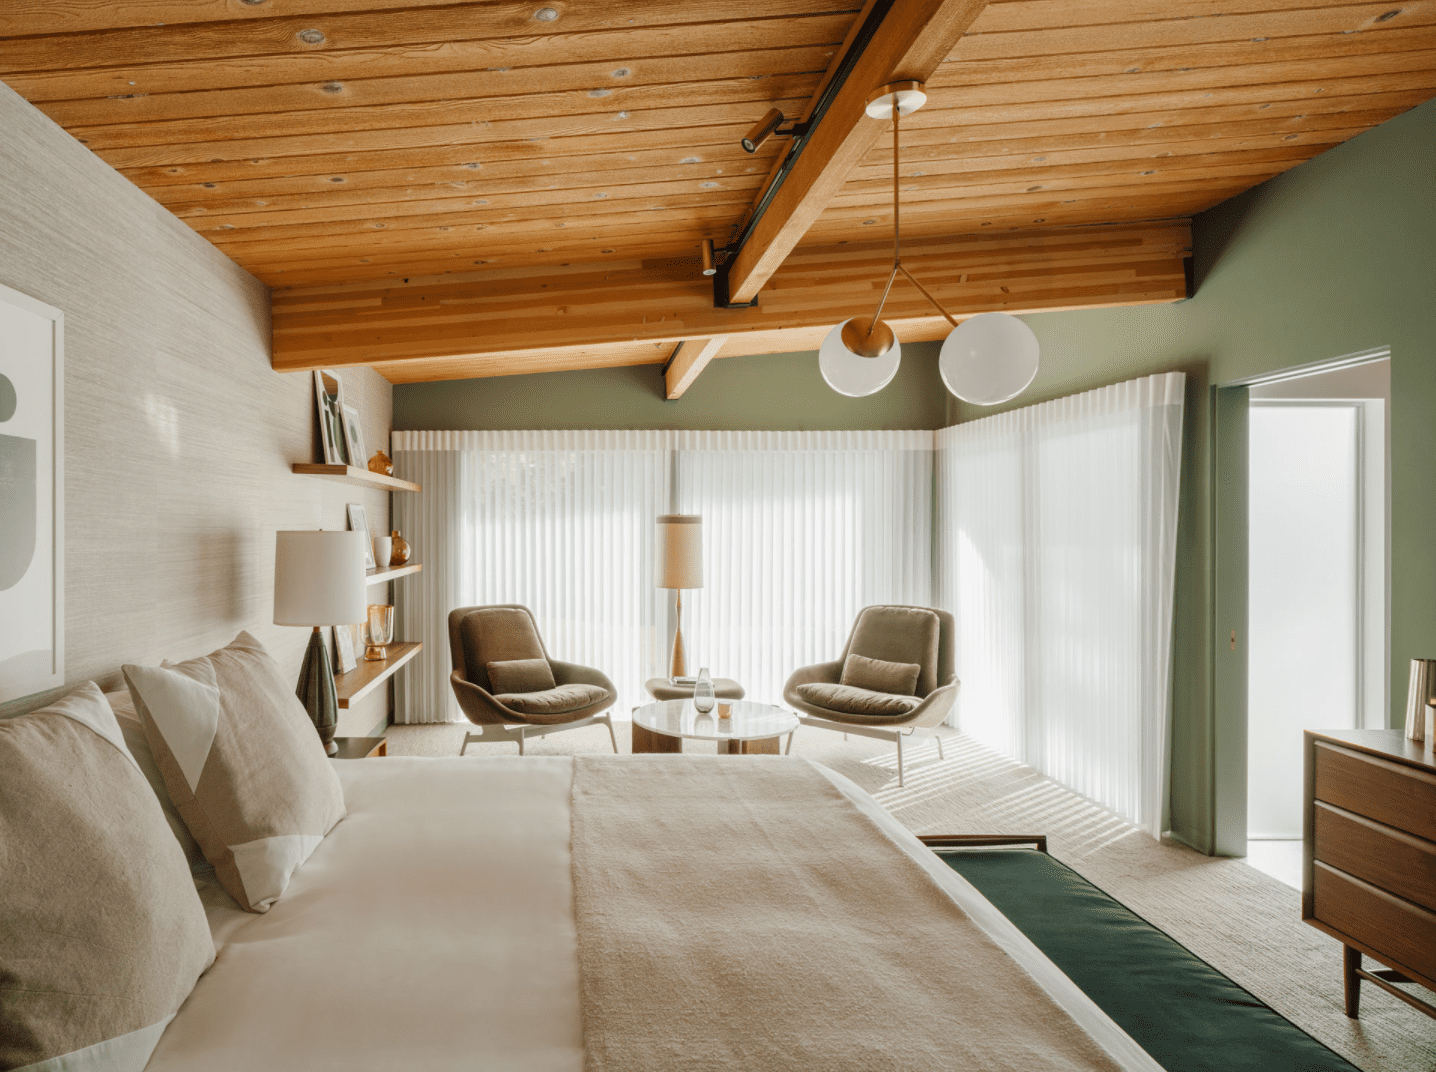 A bedroom lined with sage green walls